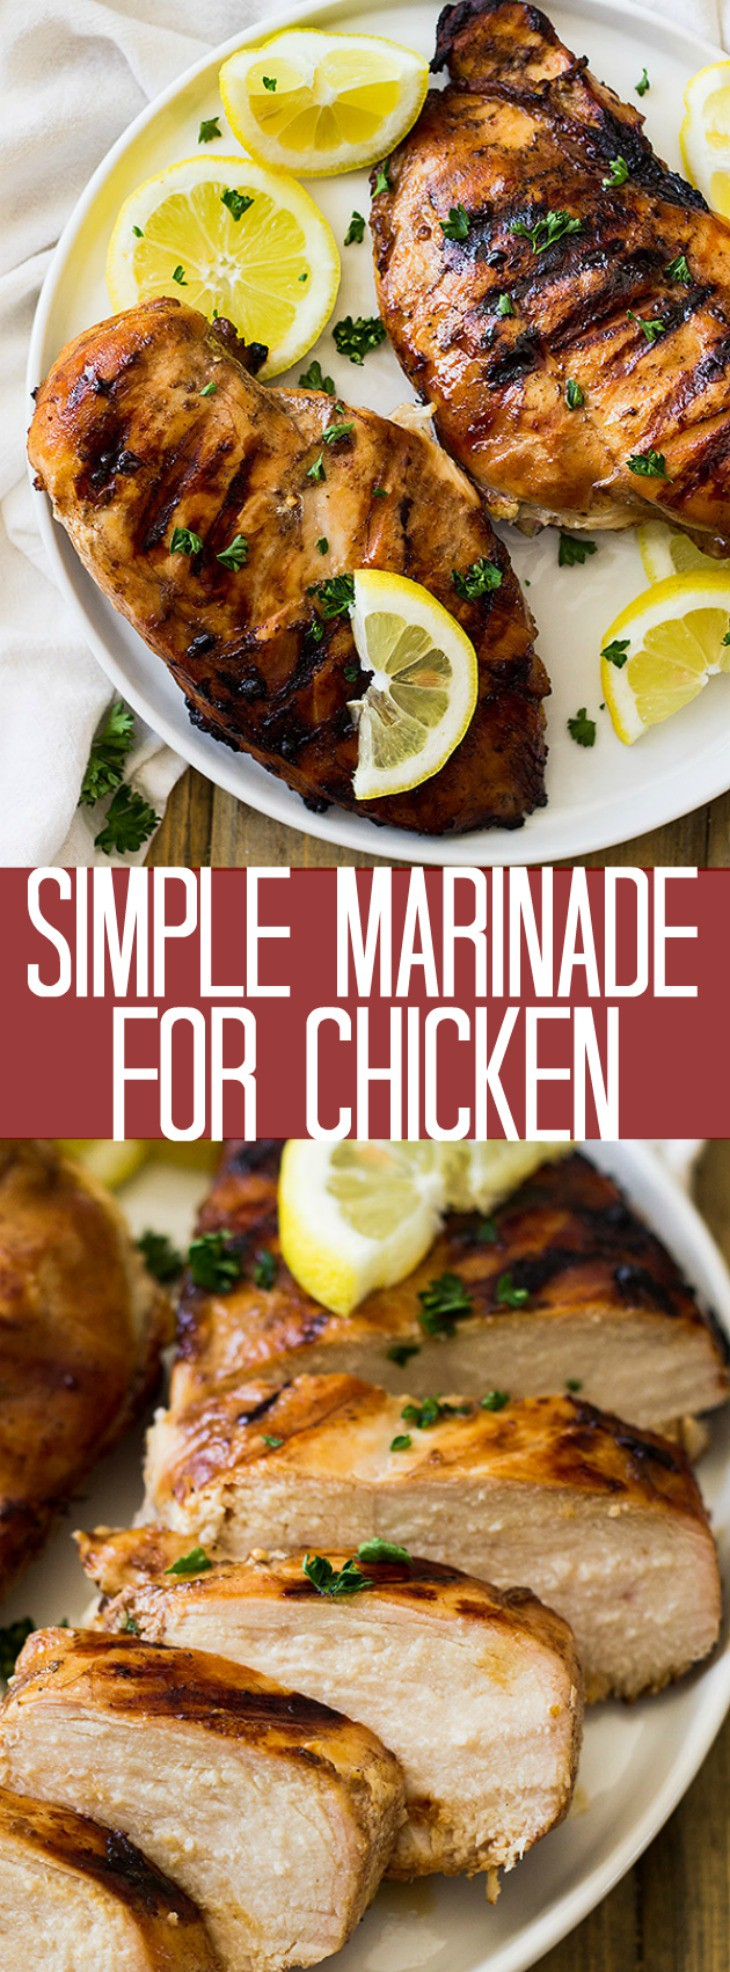 This Simple Marinade for Chicken is perfect for grilling season! It's super easy to make and adds tons of flavor!